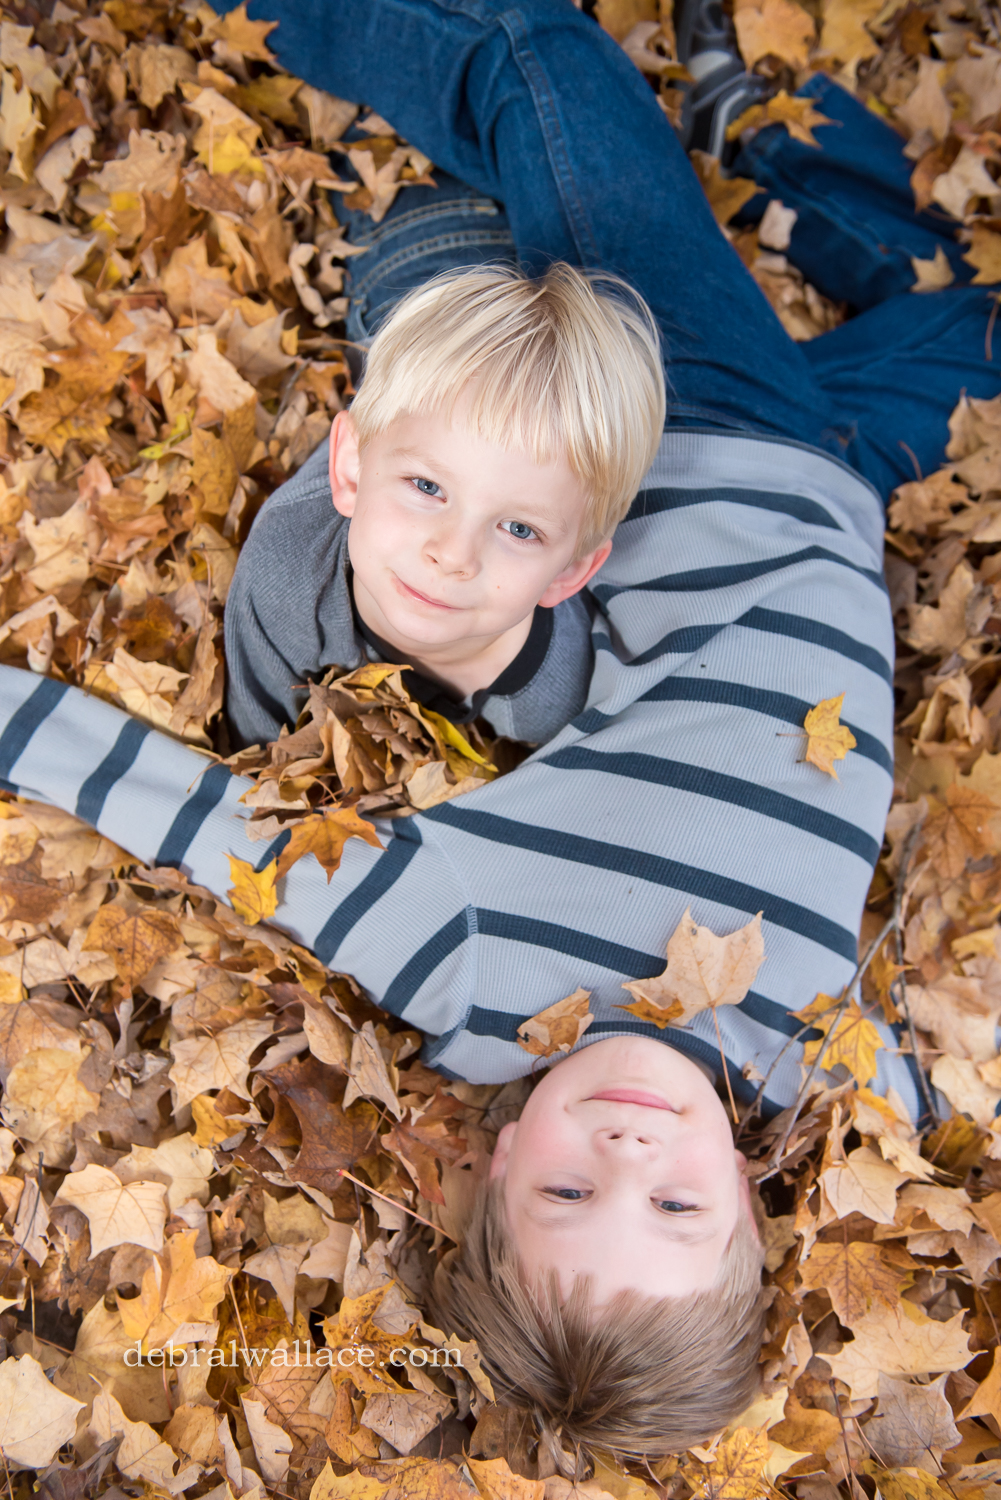 mendon-ponds-family-photography-hollow-log-leaves-brothers-1378